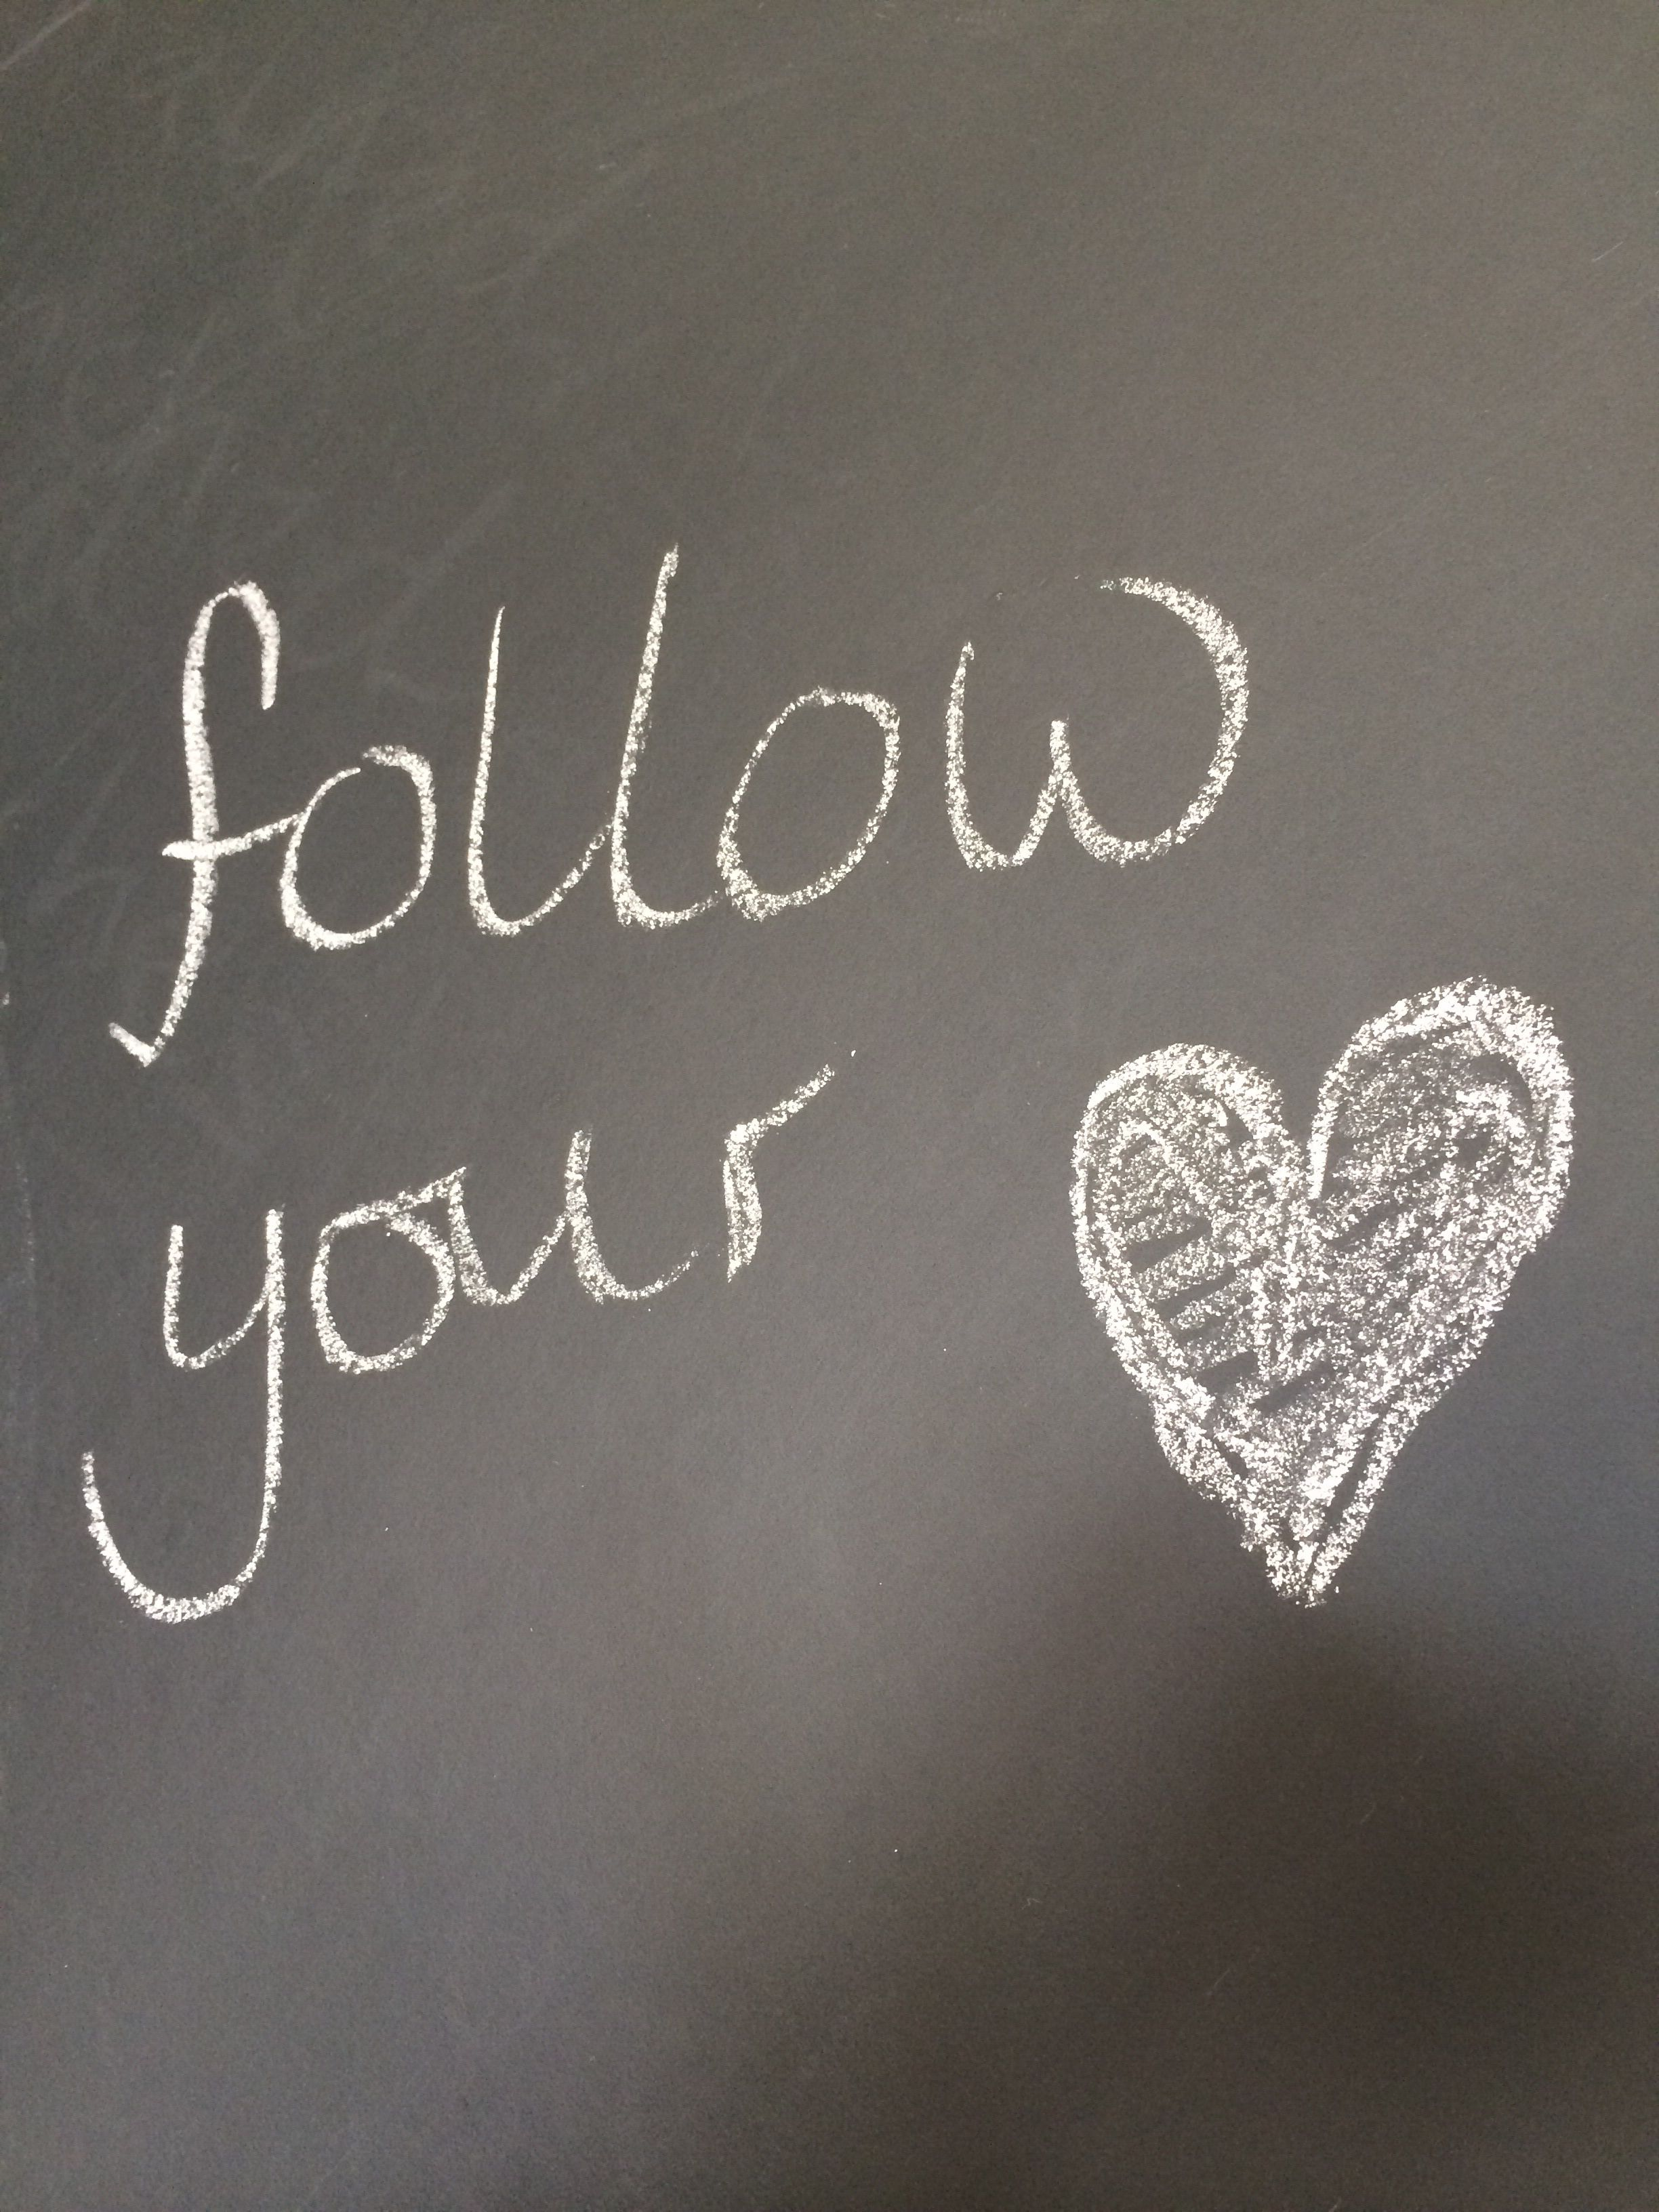 Follow your heart message on my blackboard x